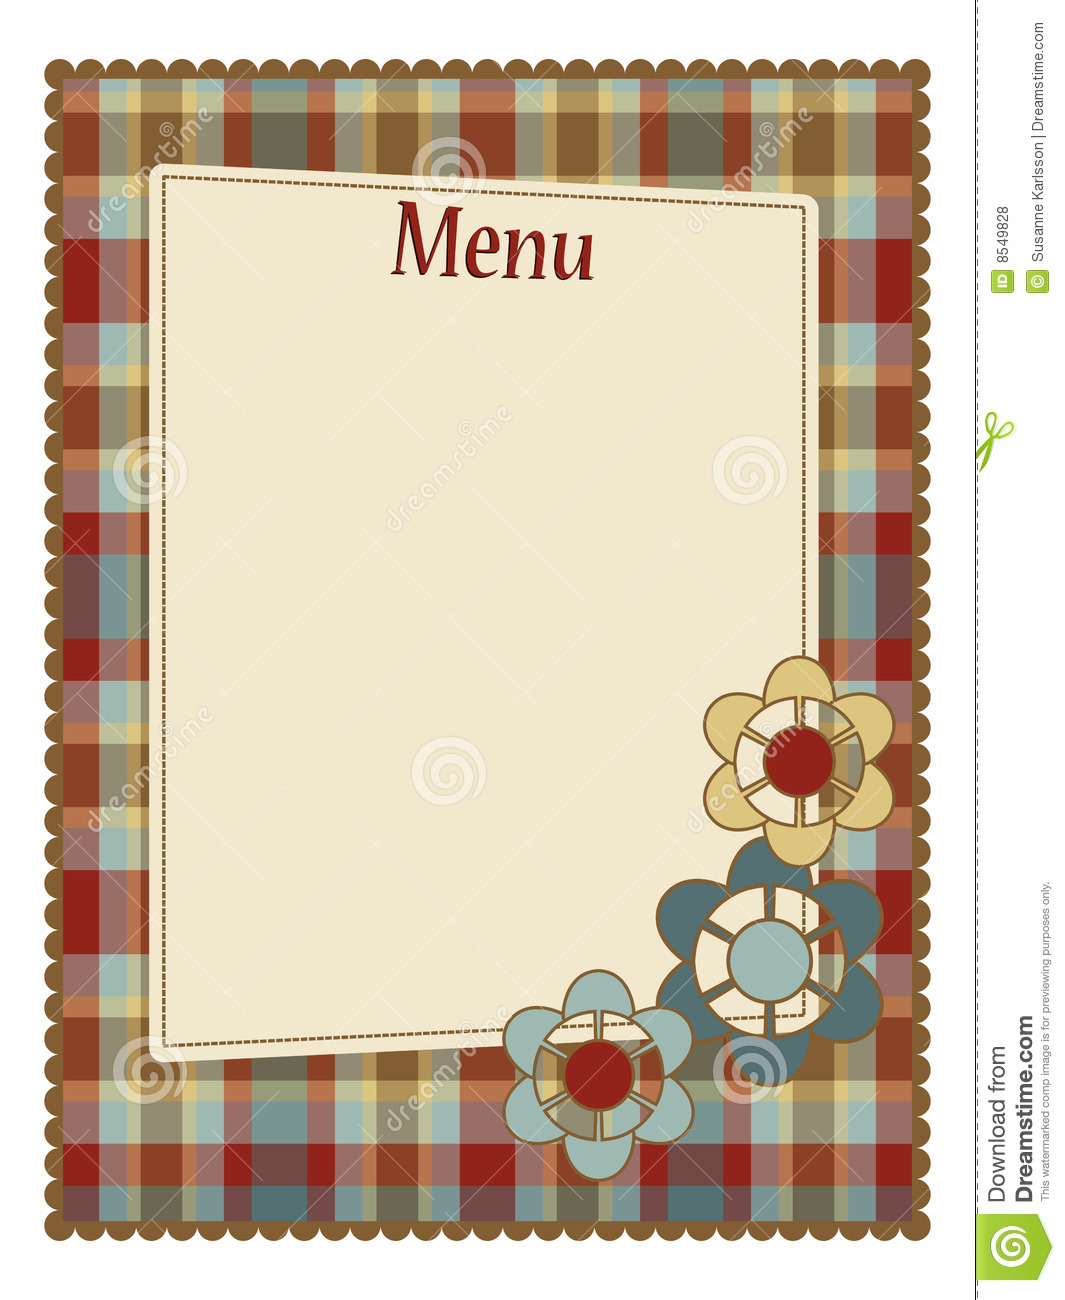 Menu template royalty free stock photos image 8549828 for Menue templates